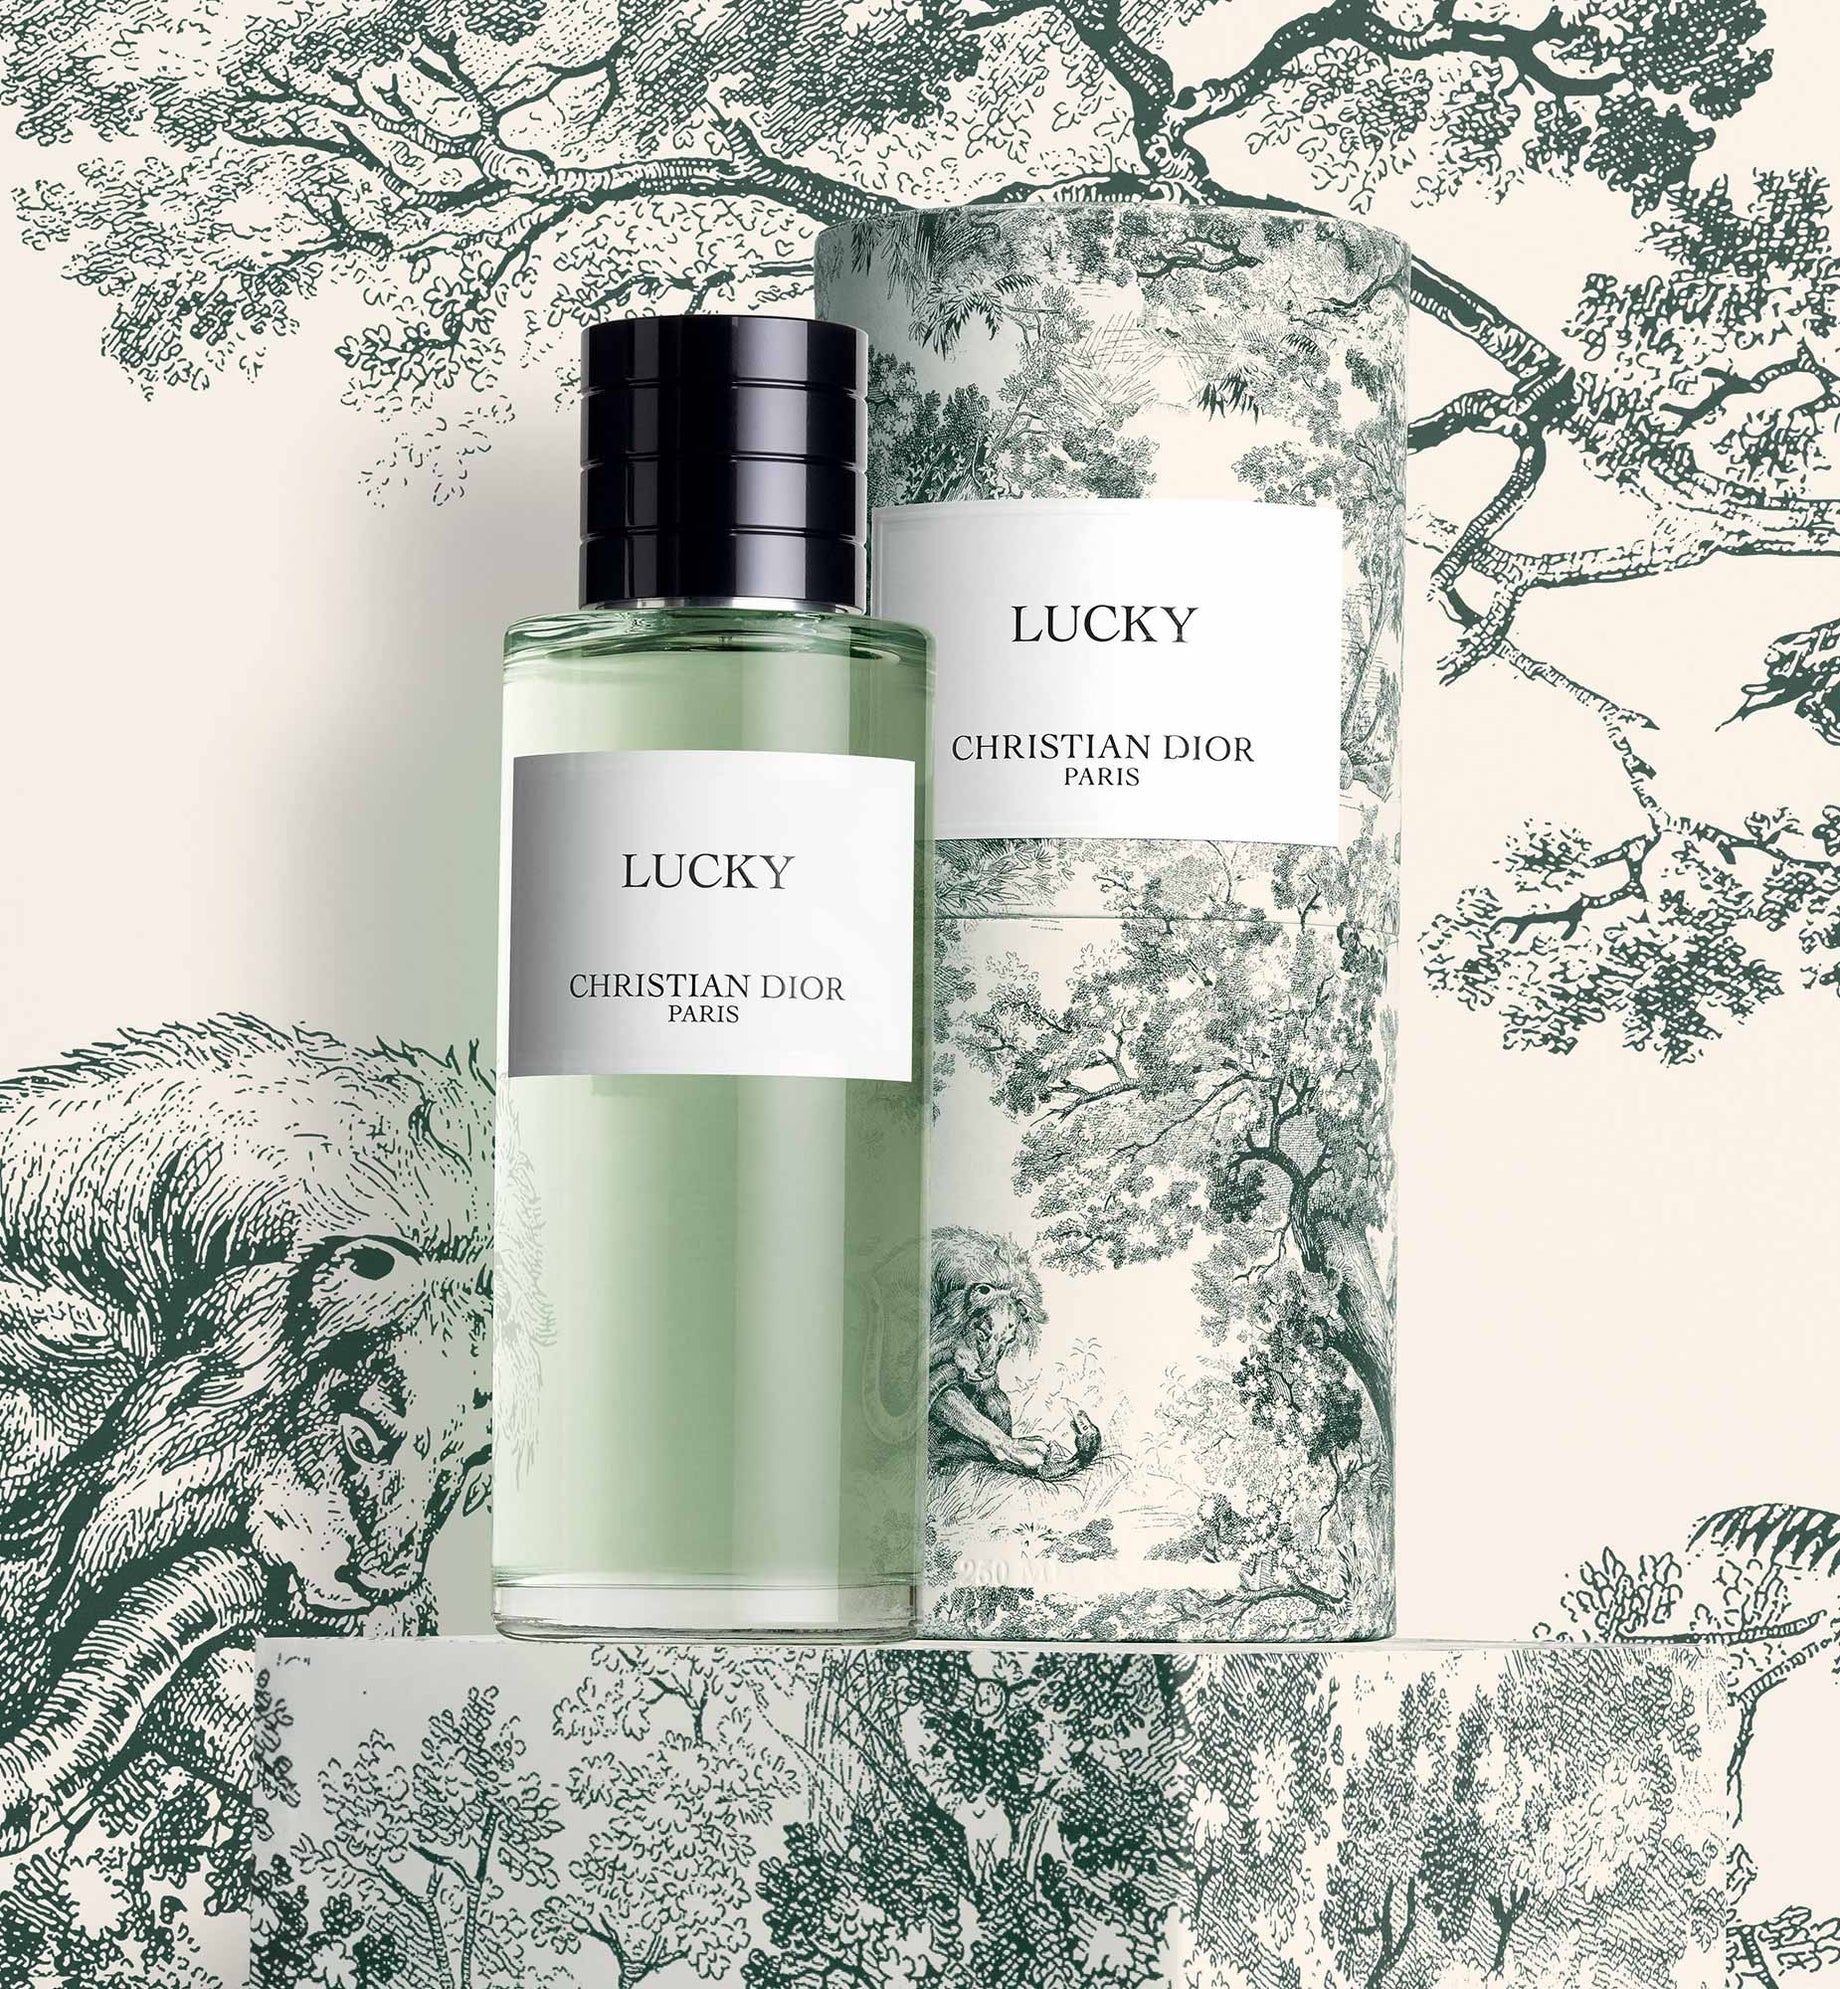 LUCKY - Toile de Jouy Limited Edition